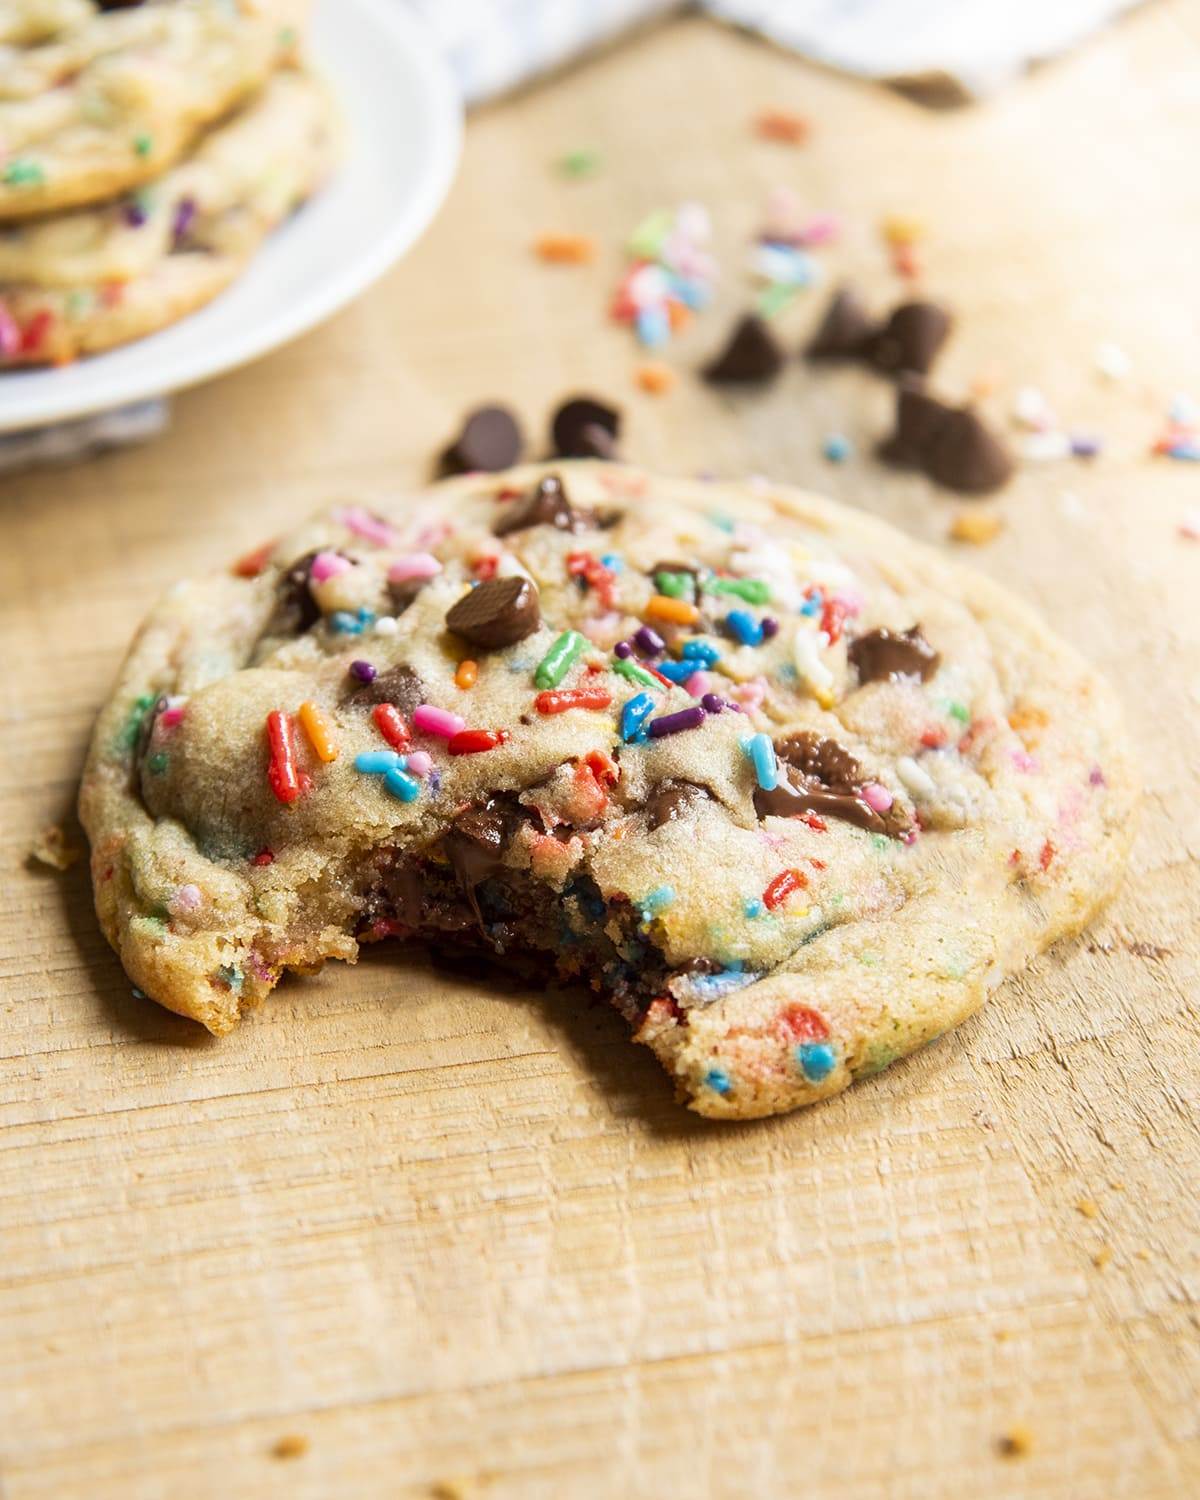 A giant chocolate chip cookie with sprinkles, with a bite taken out of it.